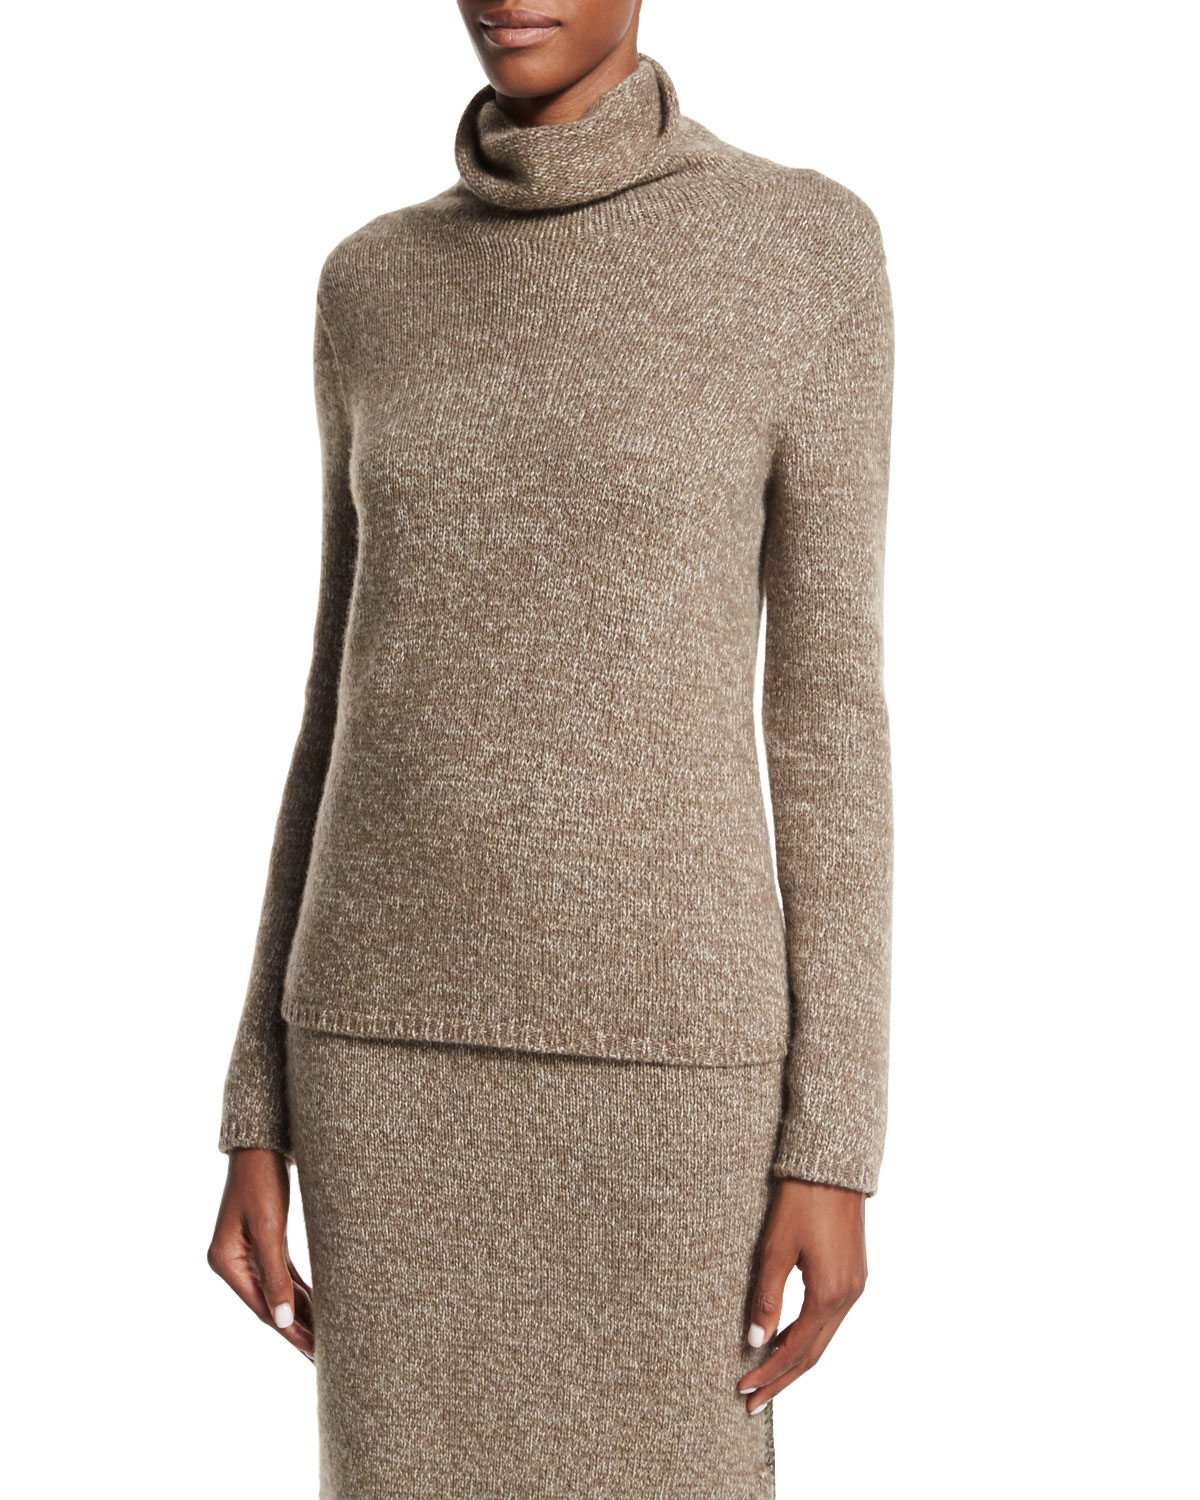 Long-Sleeve Cashmere Sweater, Truffle